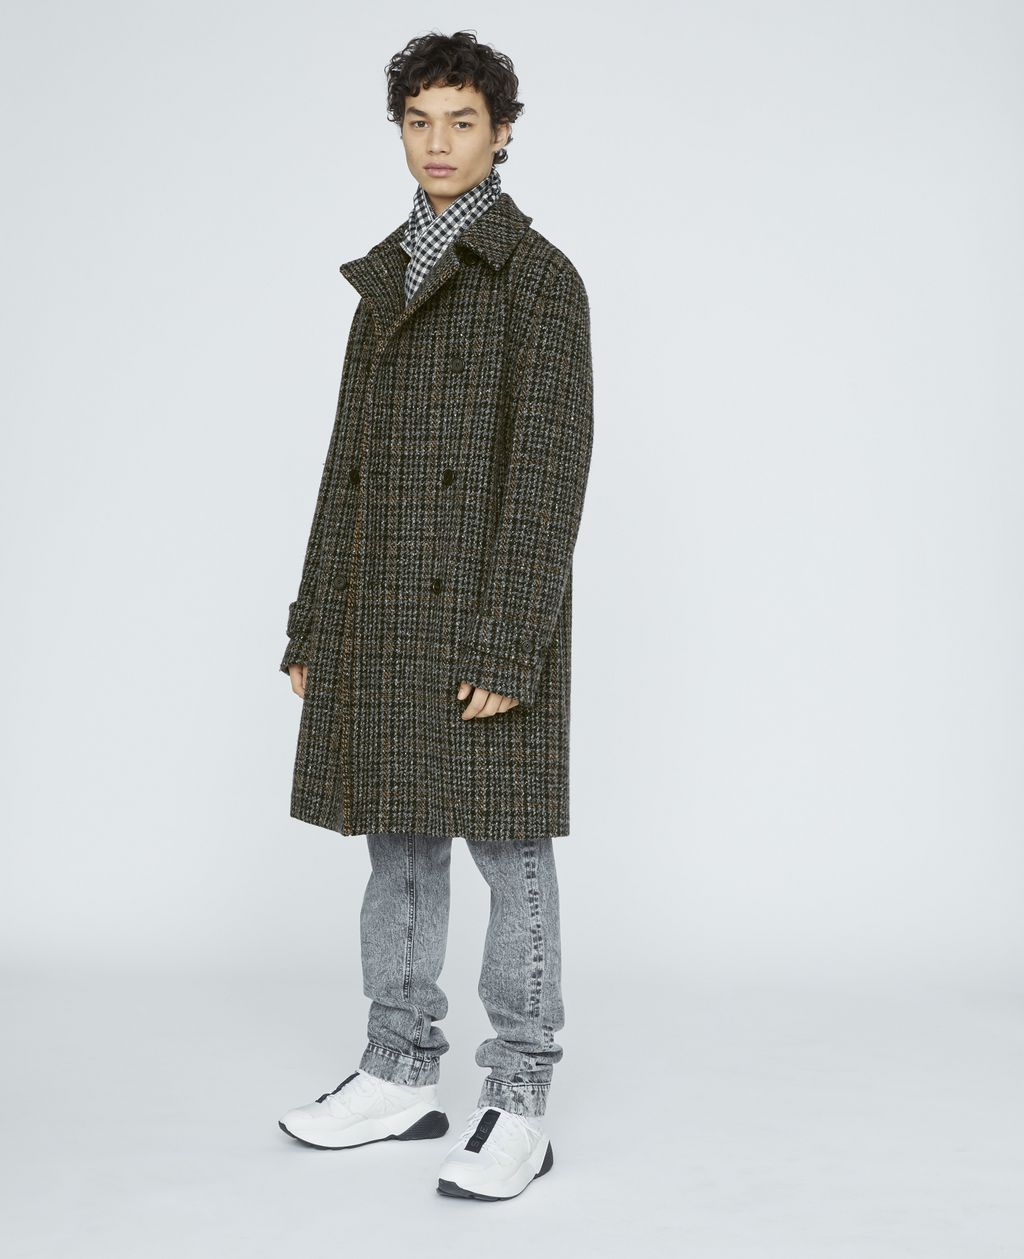 ao khoac nam - ao overcoat stella mccartney - elle man